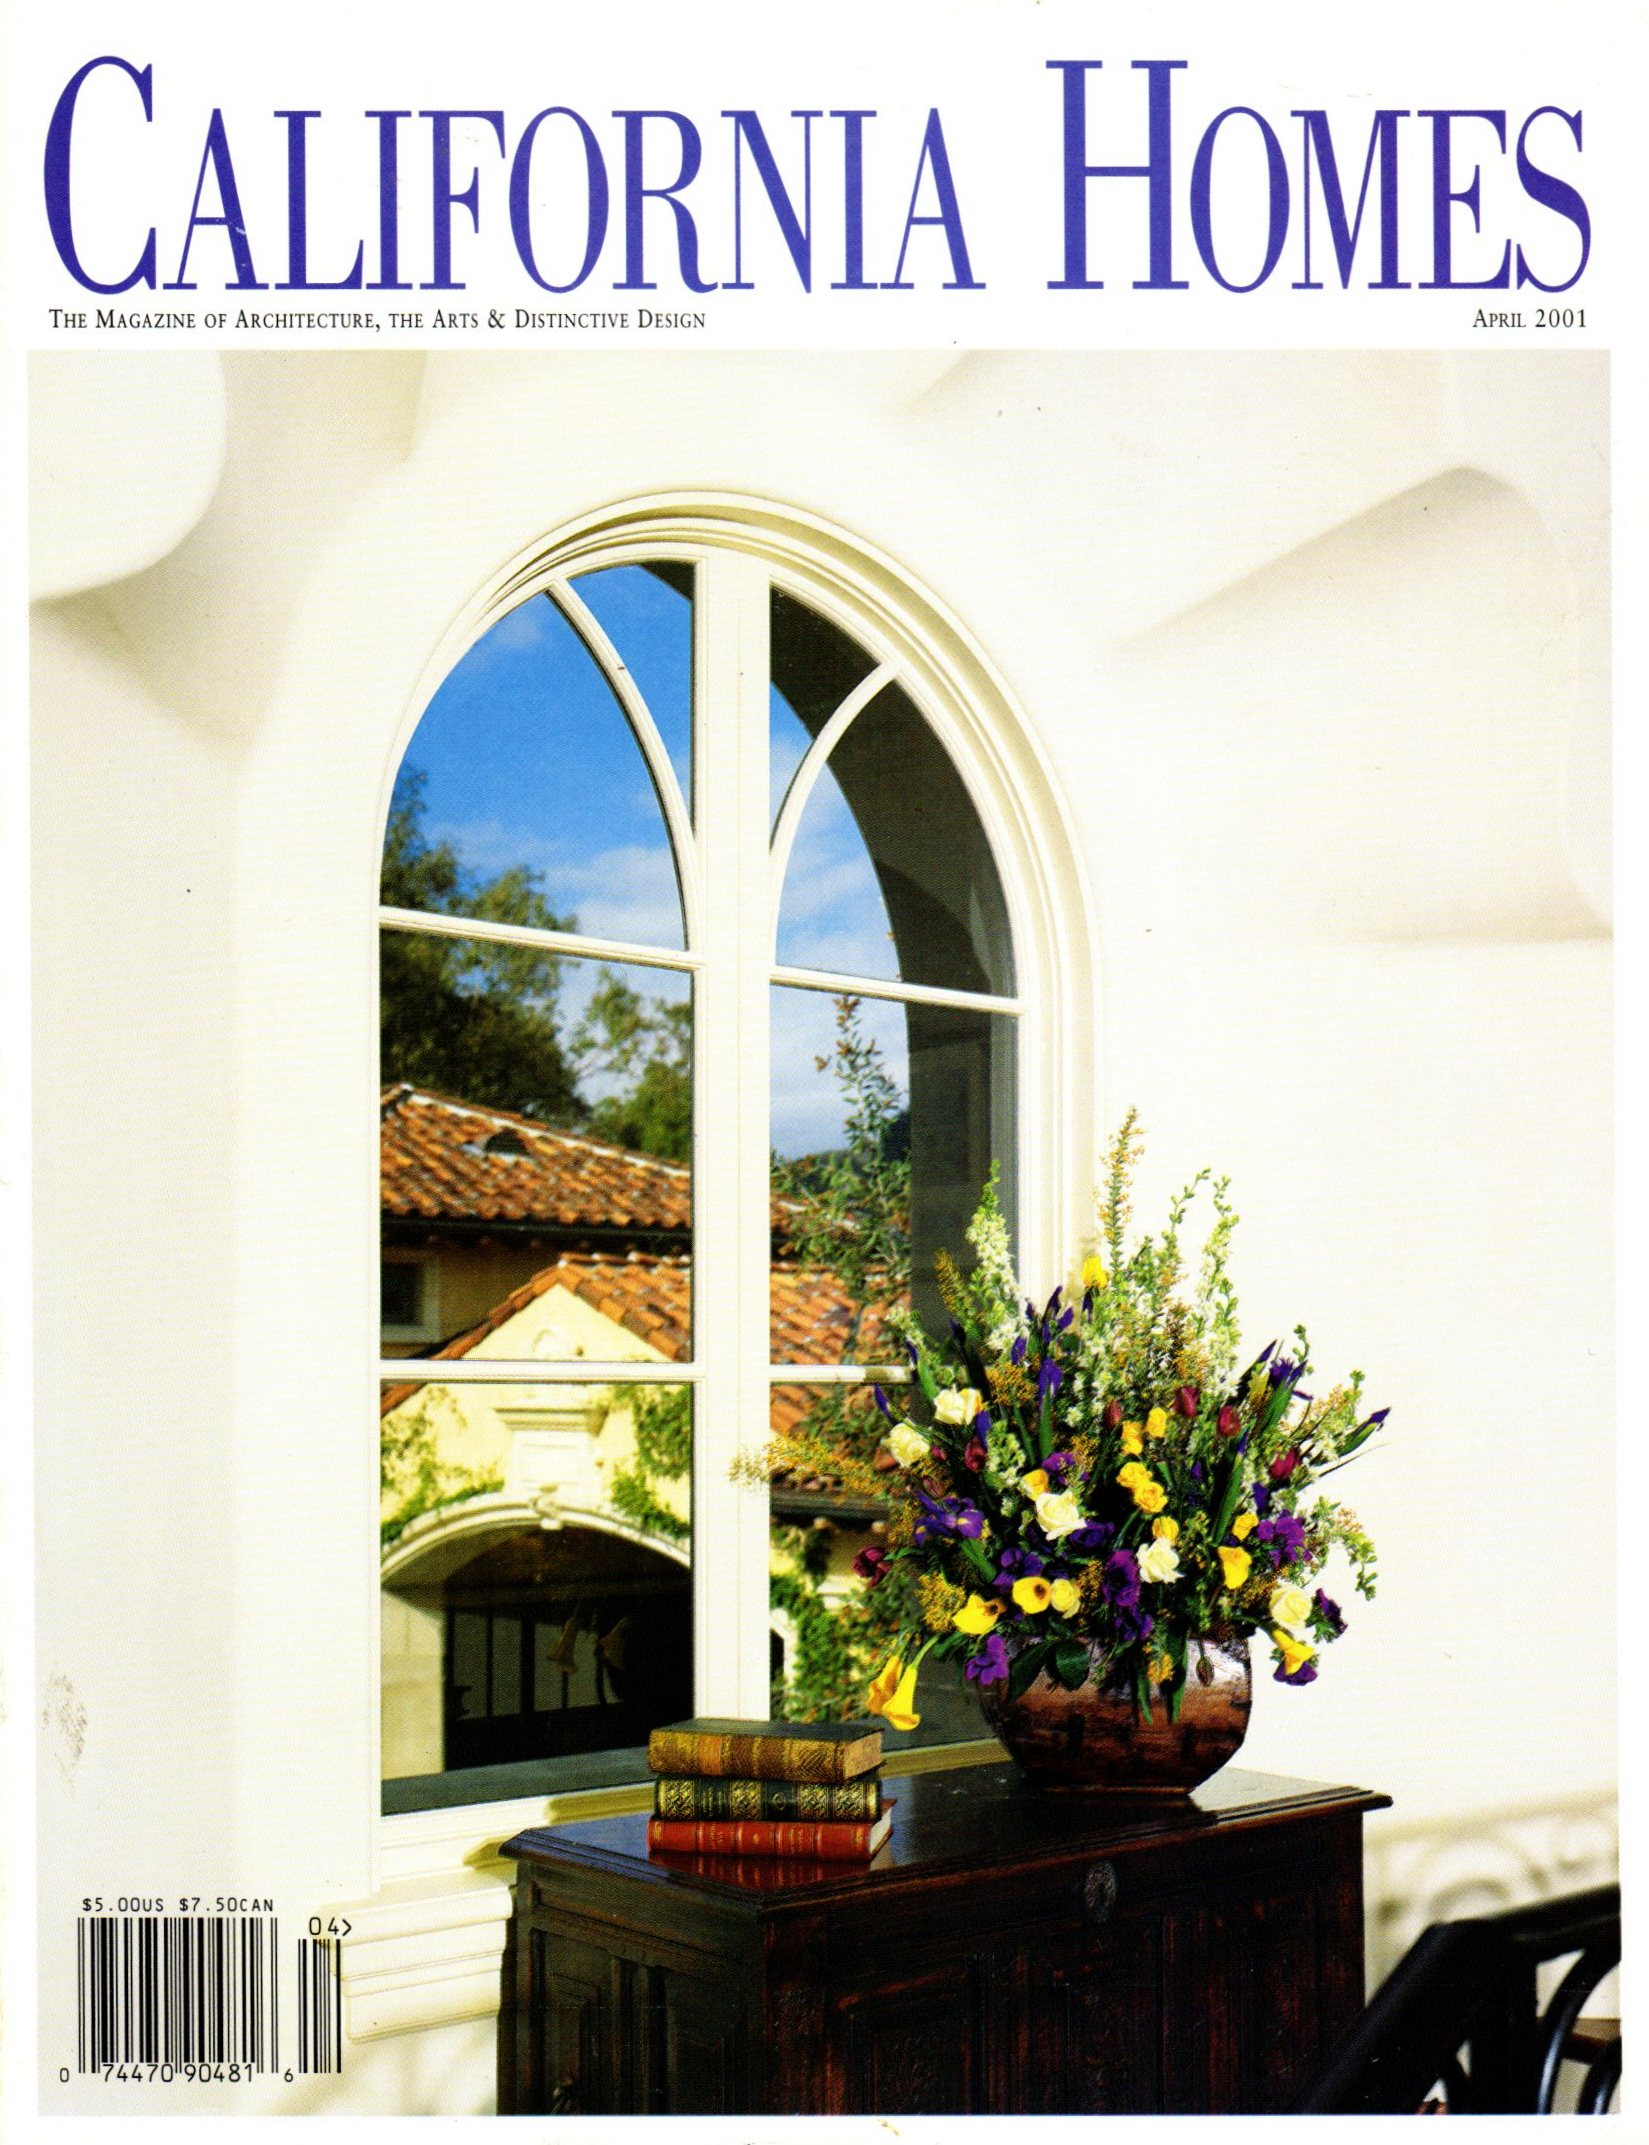 California Homes, April 2001